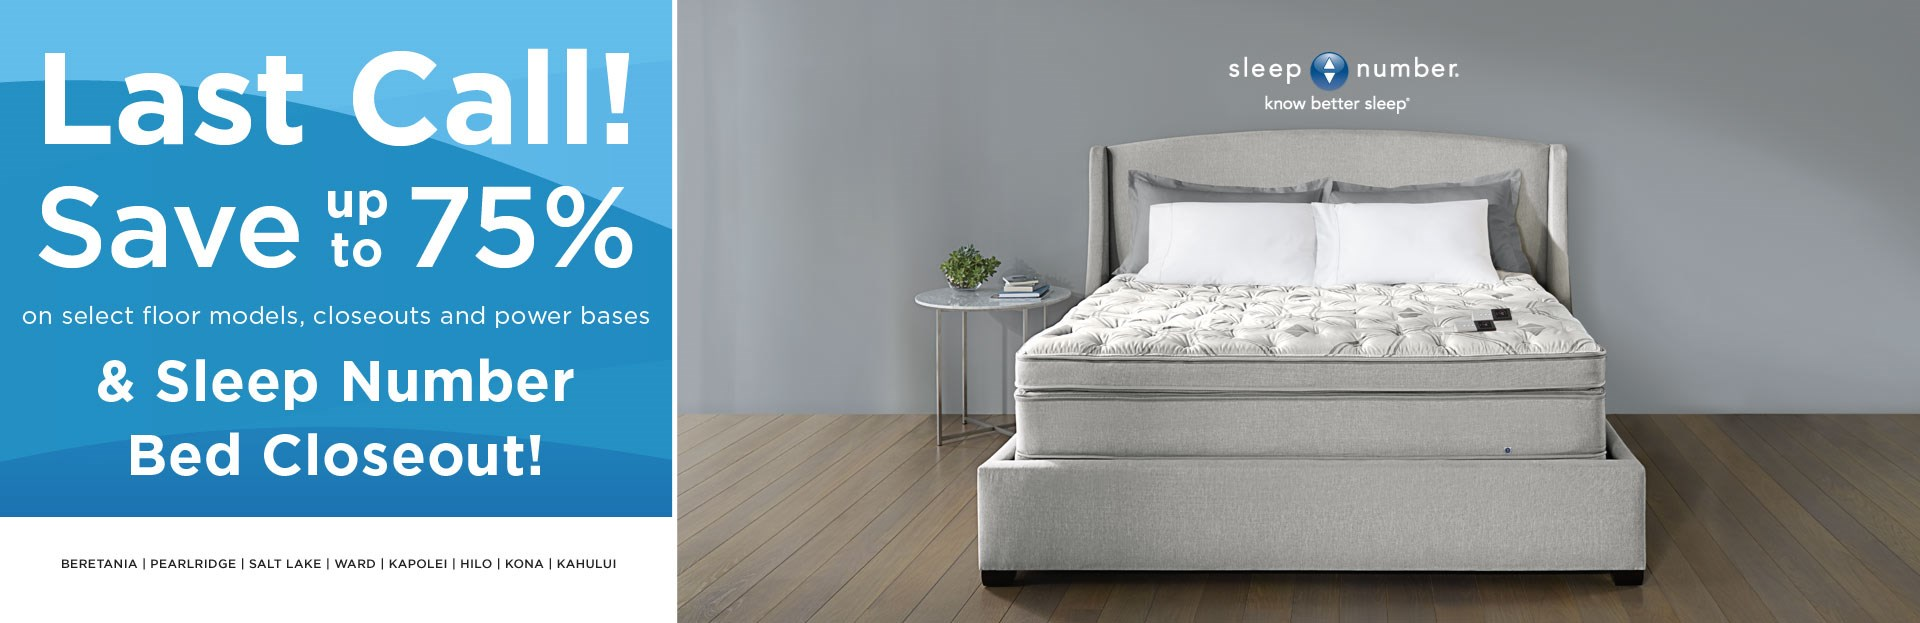 Last call sale and Sleep Number closeout; see store for details.